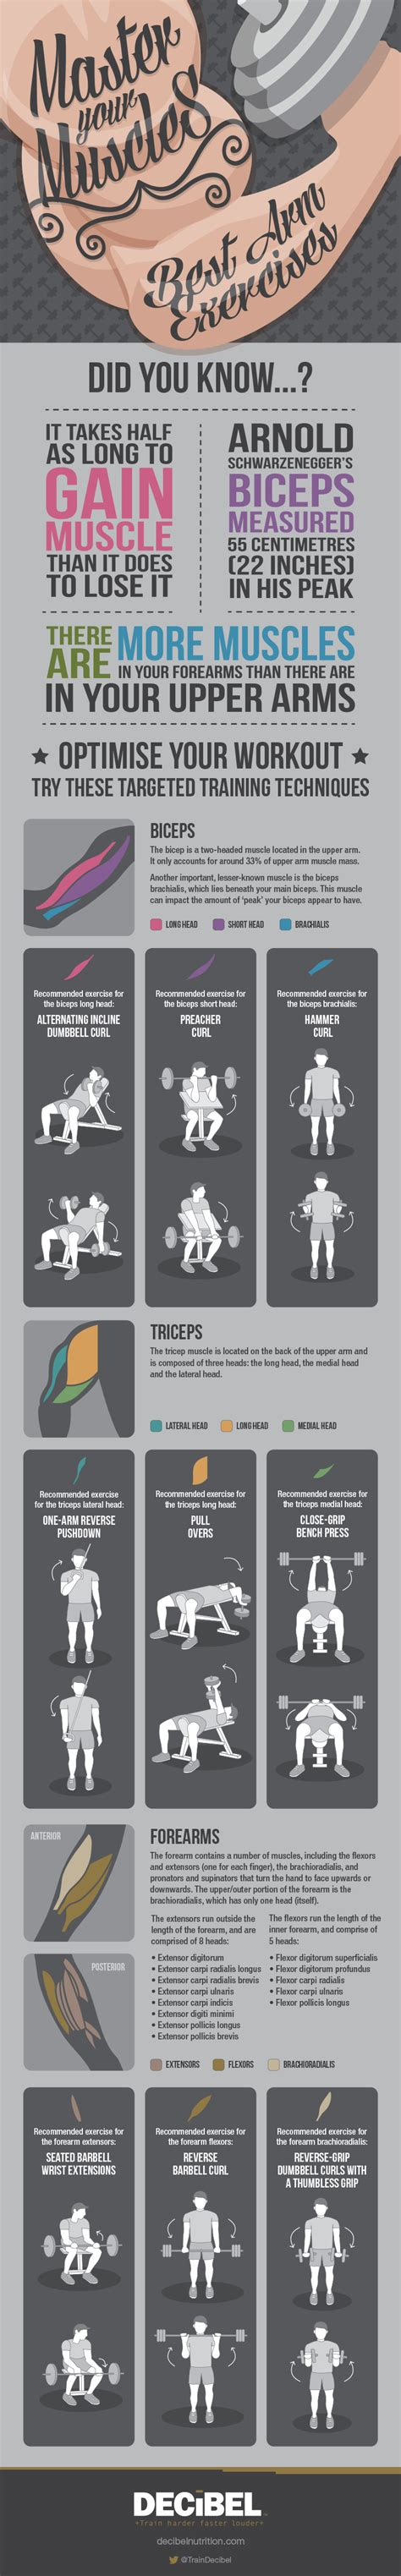 newspaper layout exercises infographic the best exercises for your arms and legs